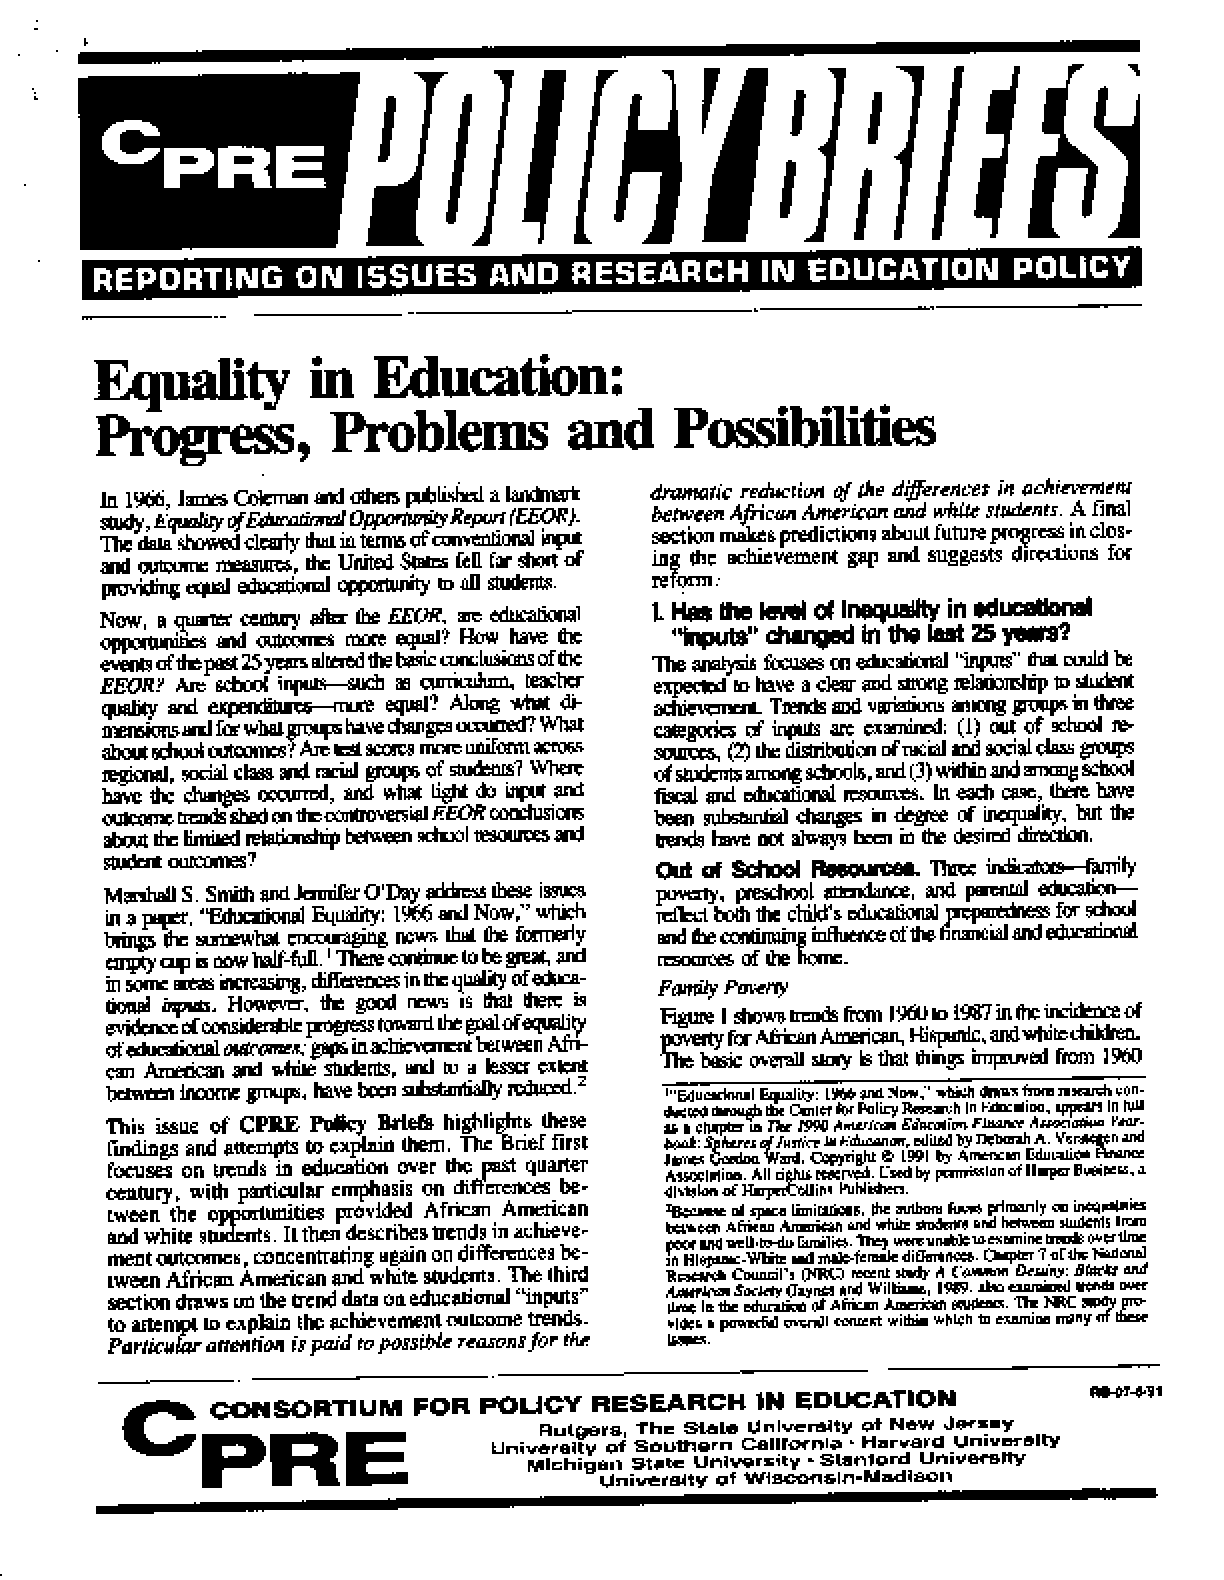 Equality in Education: Progress, Problems and Possibilities